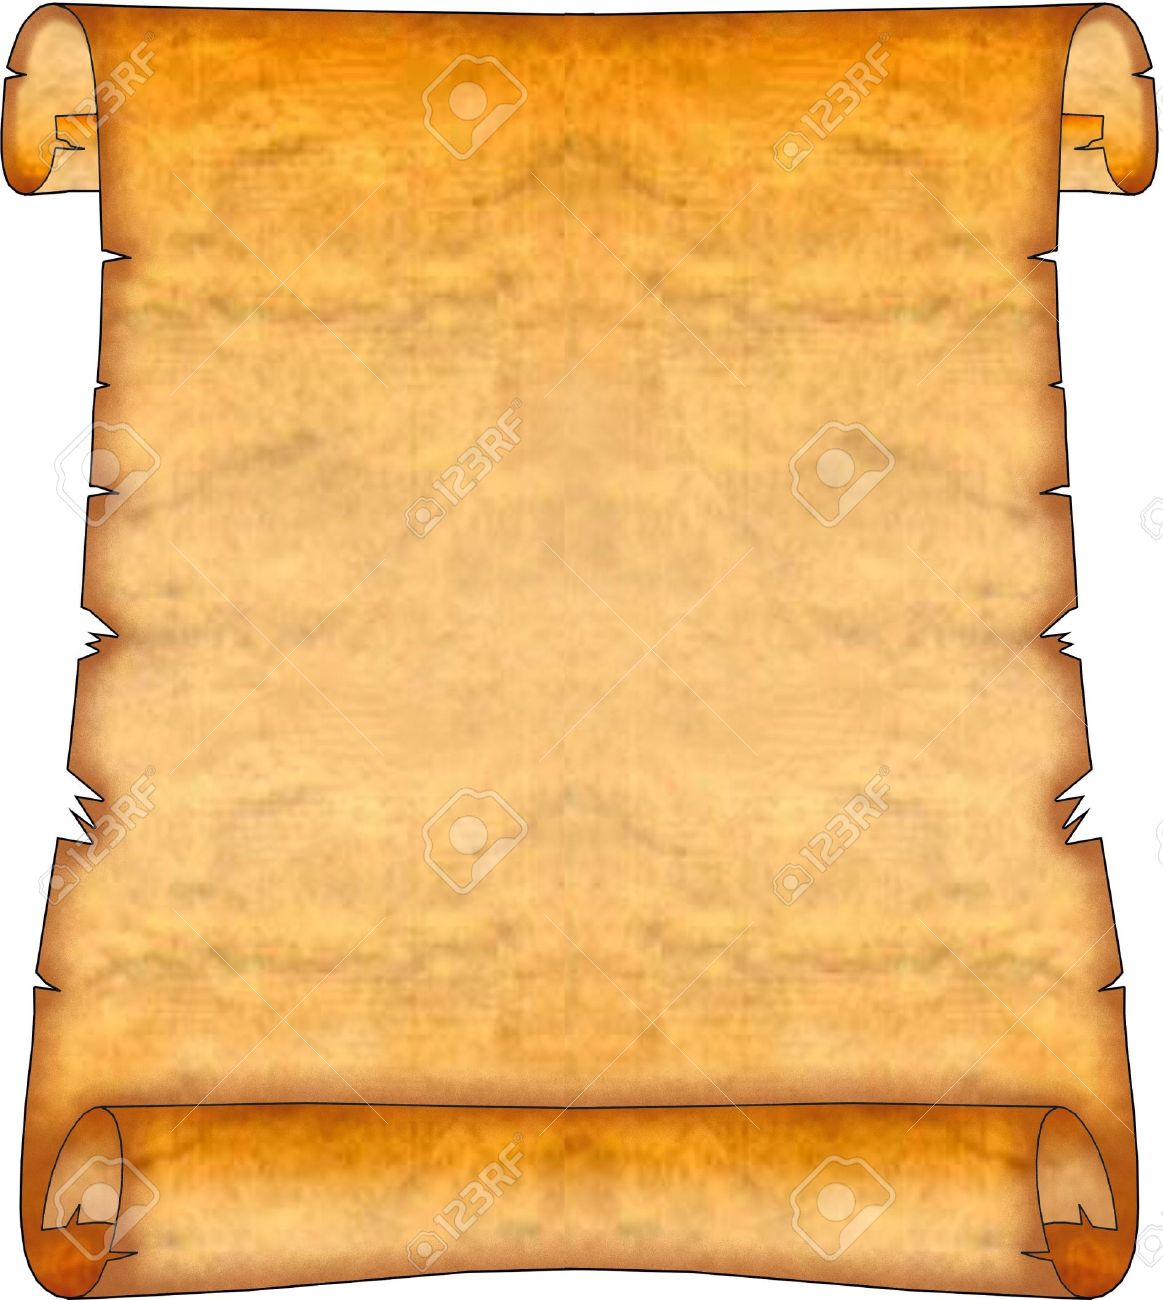 Free Ancient Scroll Cliparts, Download Free Clip Art, Free.